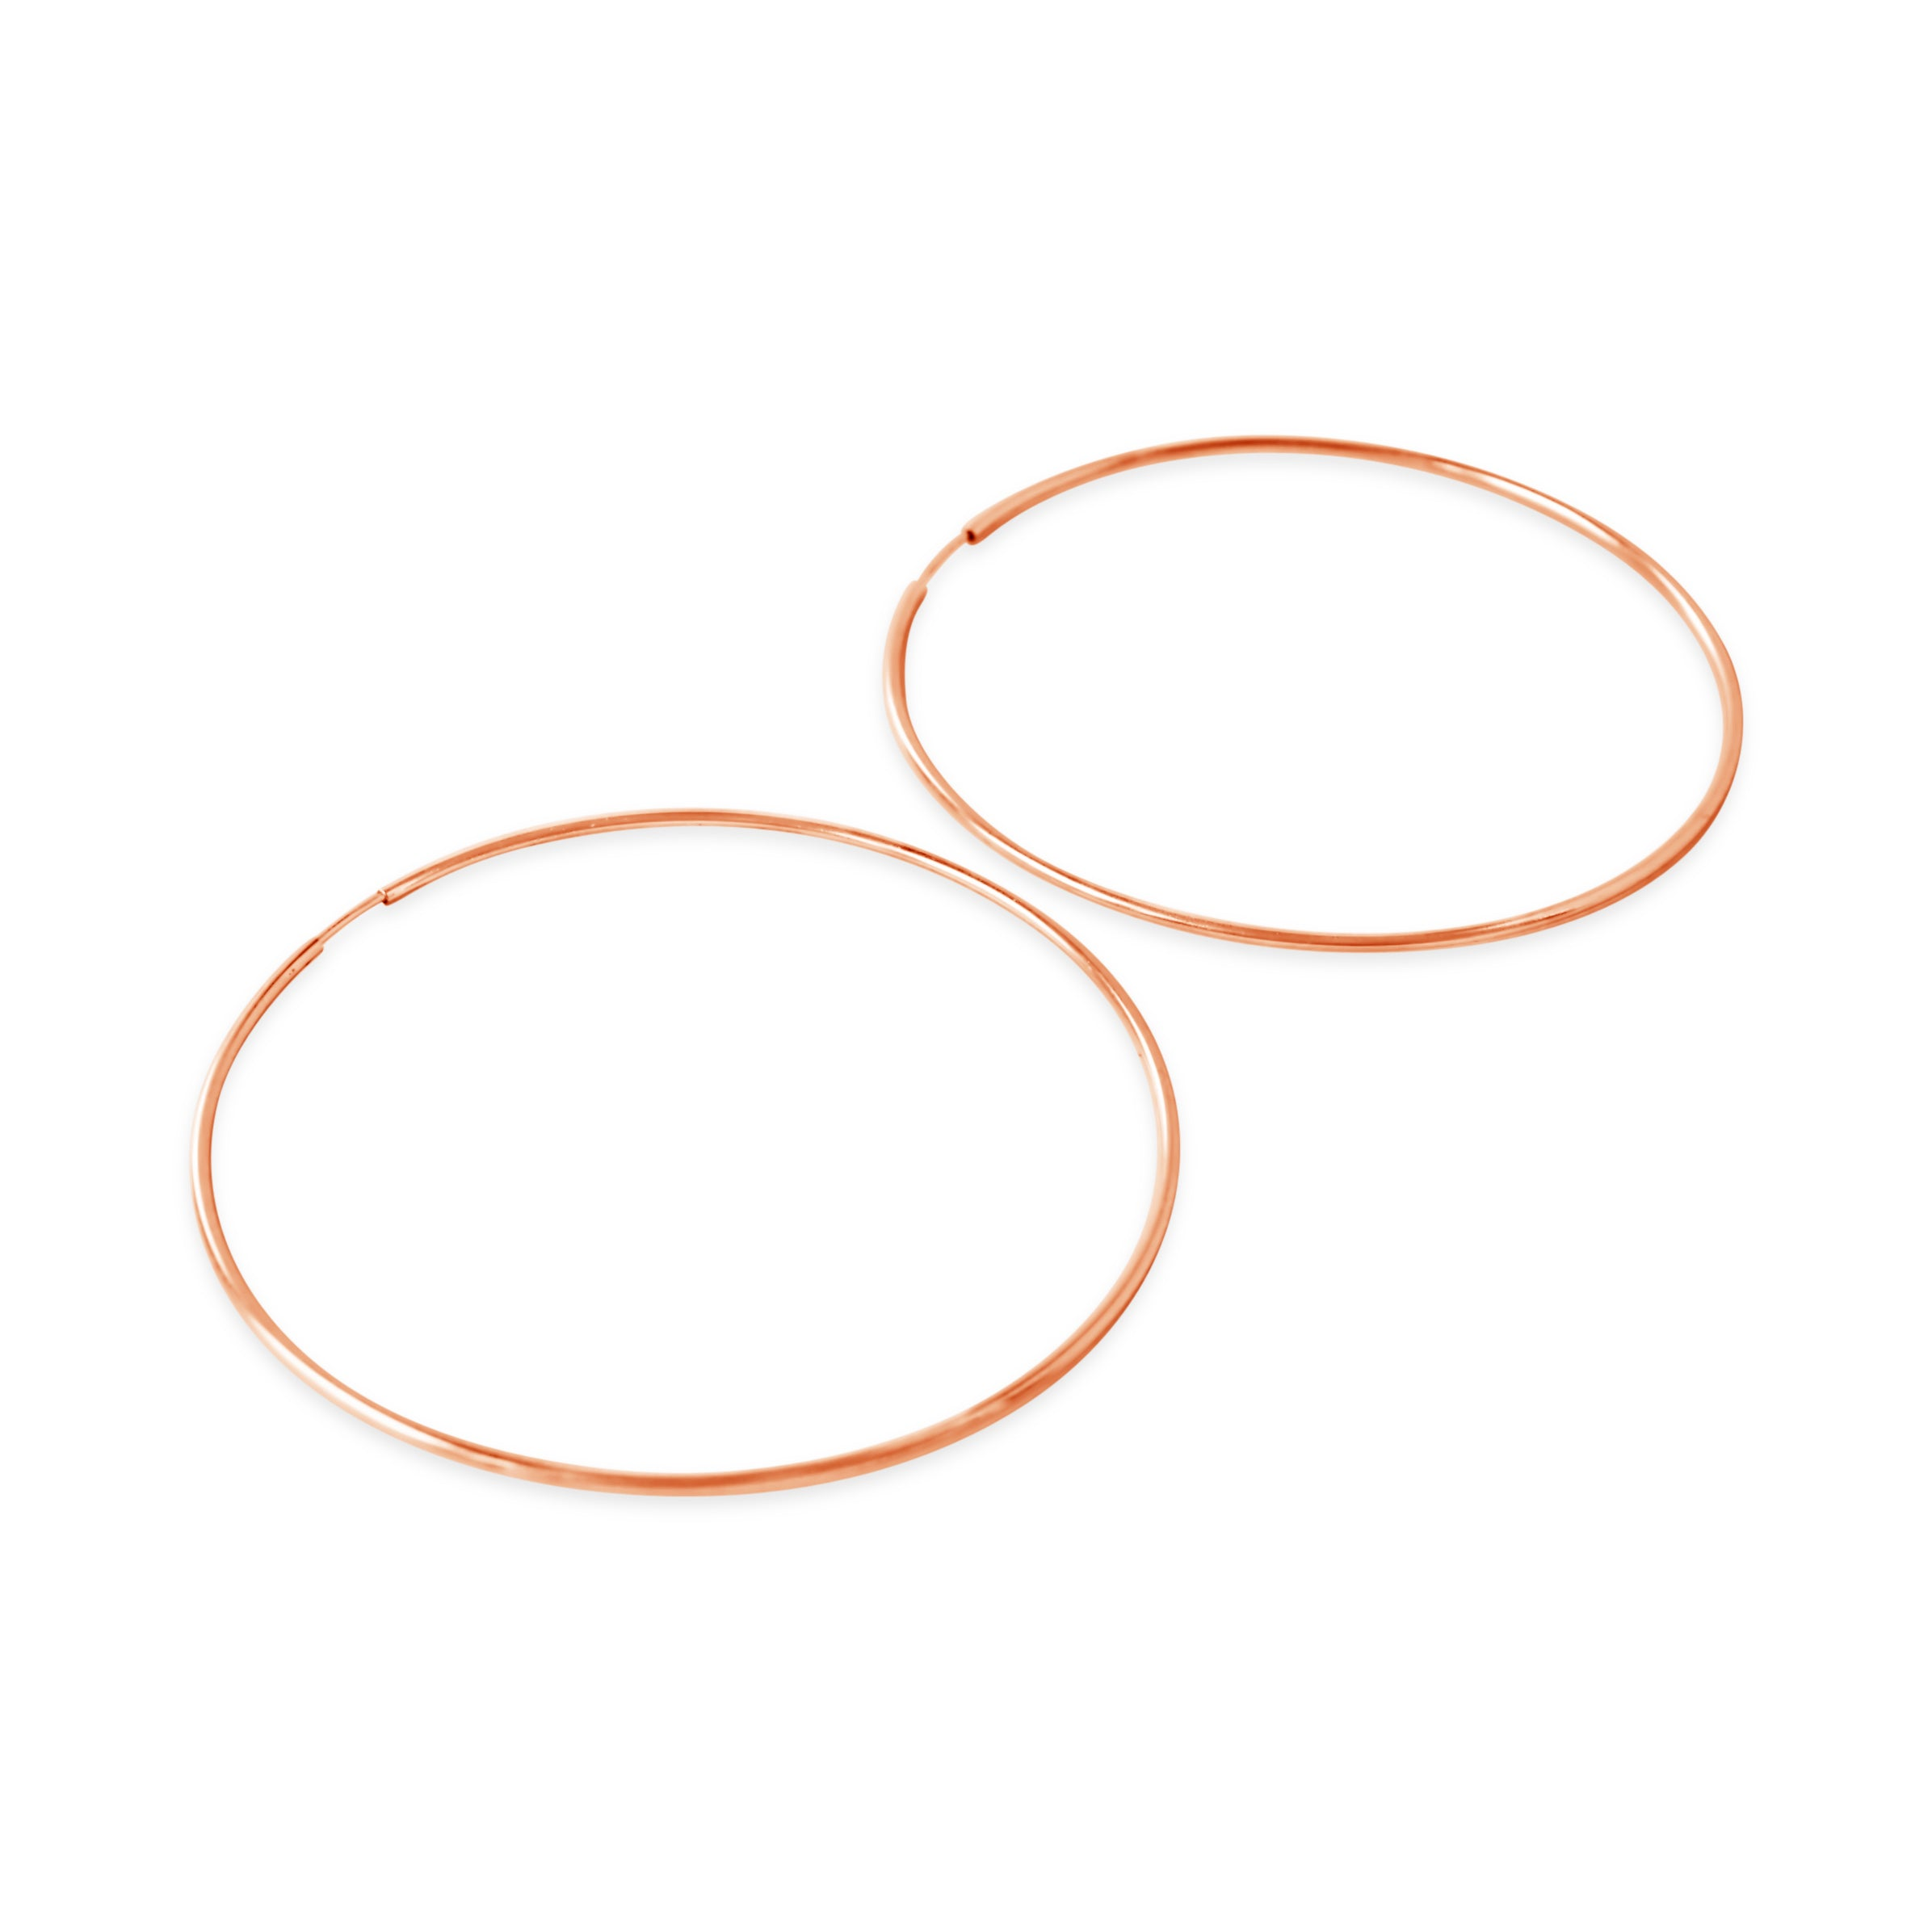 Thin Endless Hoop Earrings, Gold or Rose Gold